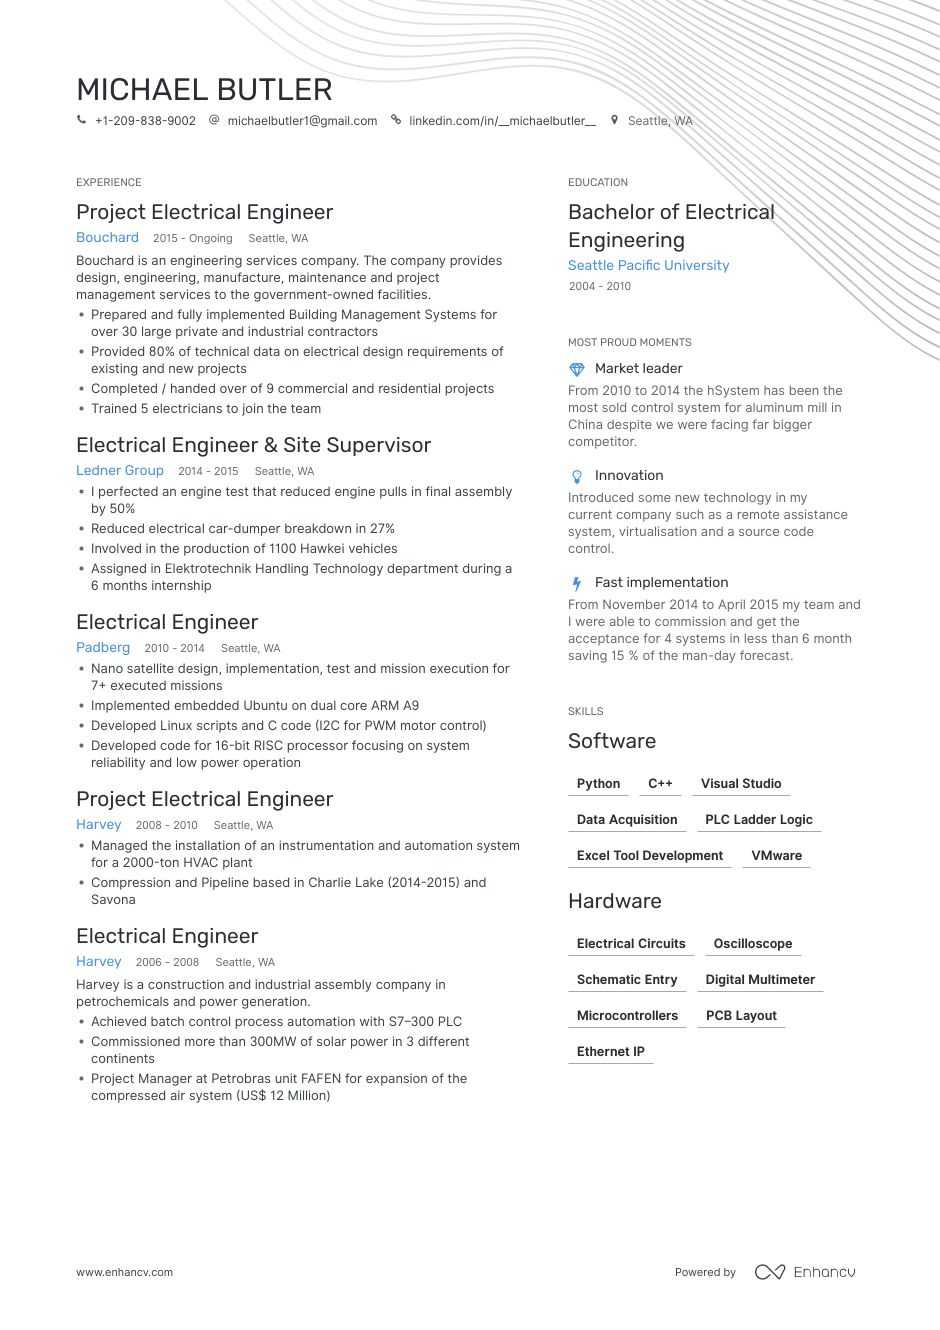 electrical engineer resume examples pro tips featured enhancv sample for energy Resume Sample Resume For Energy Engineer